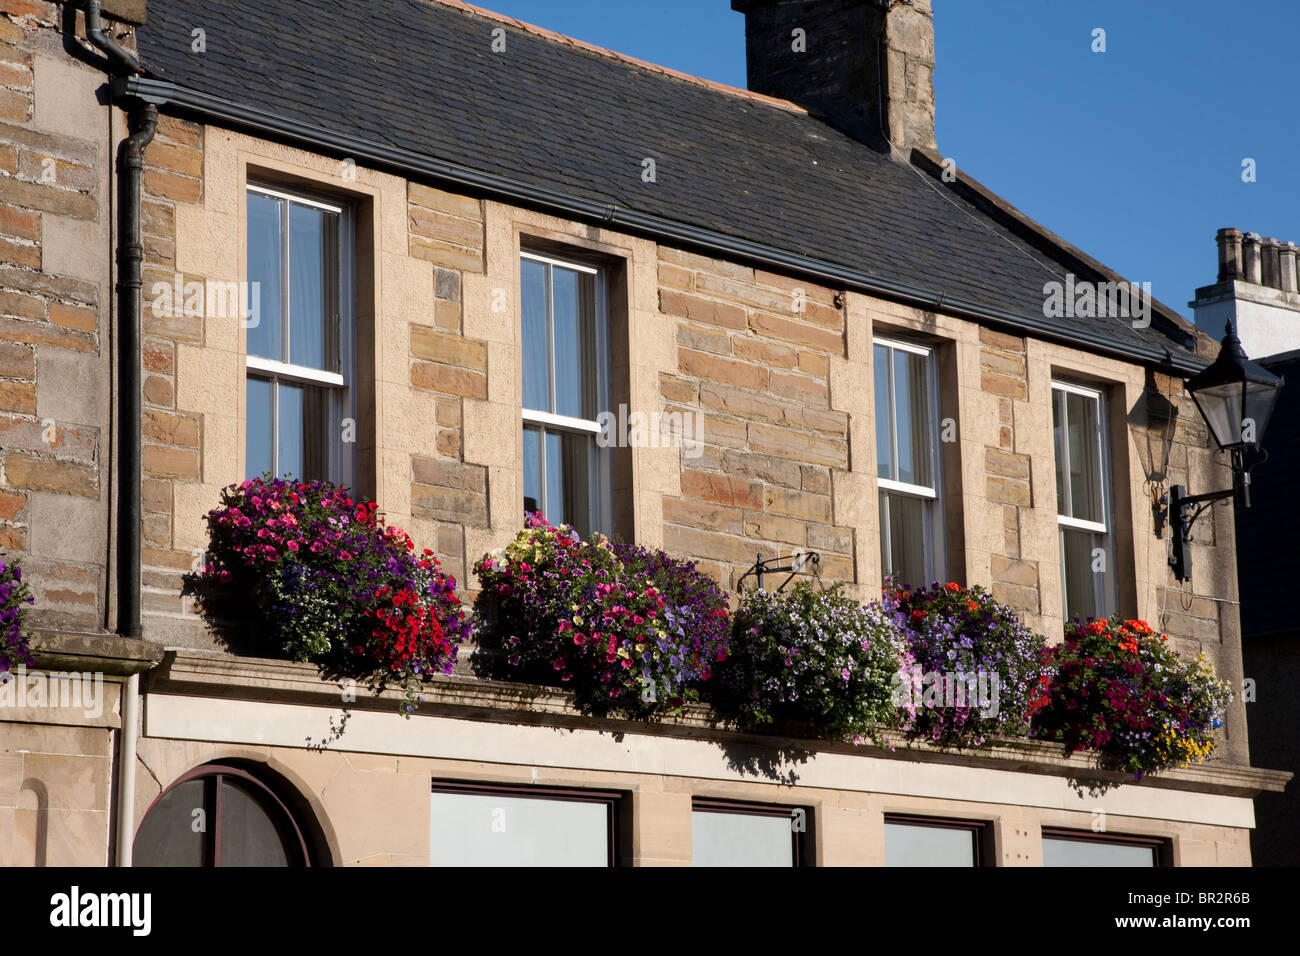 Typical Facade in Kirkwall, Orkney Islands, Scotland - Stock Image